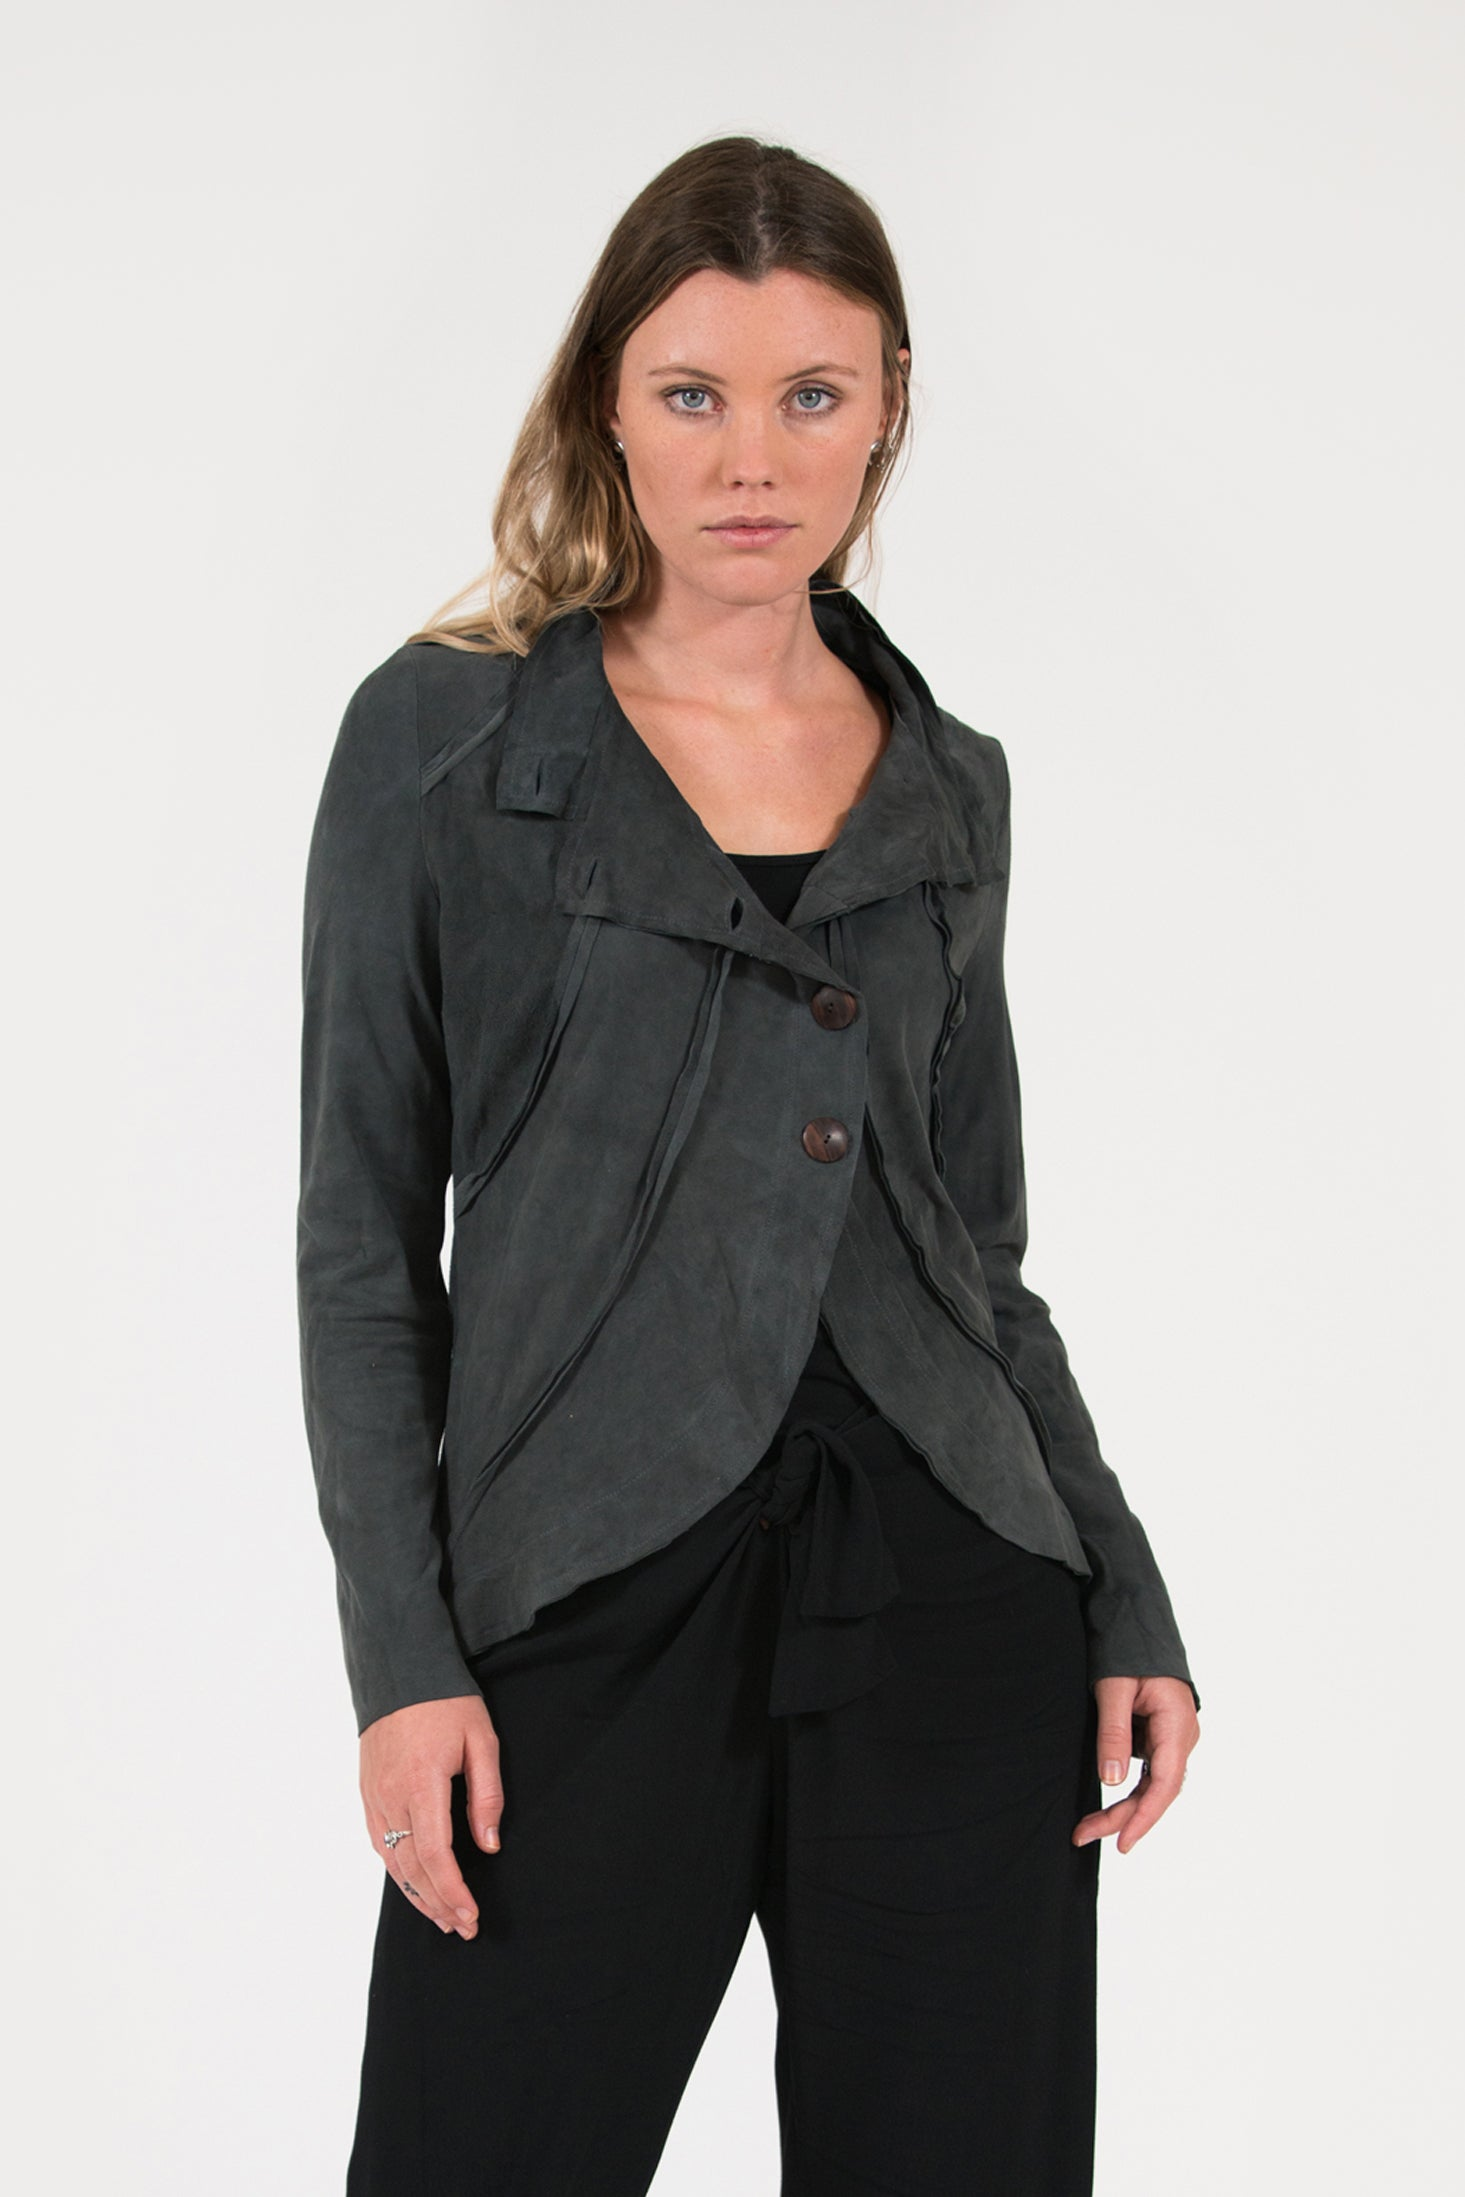 soft suede charcoal leather jacket with wooden buttons